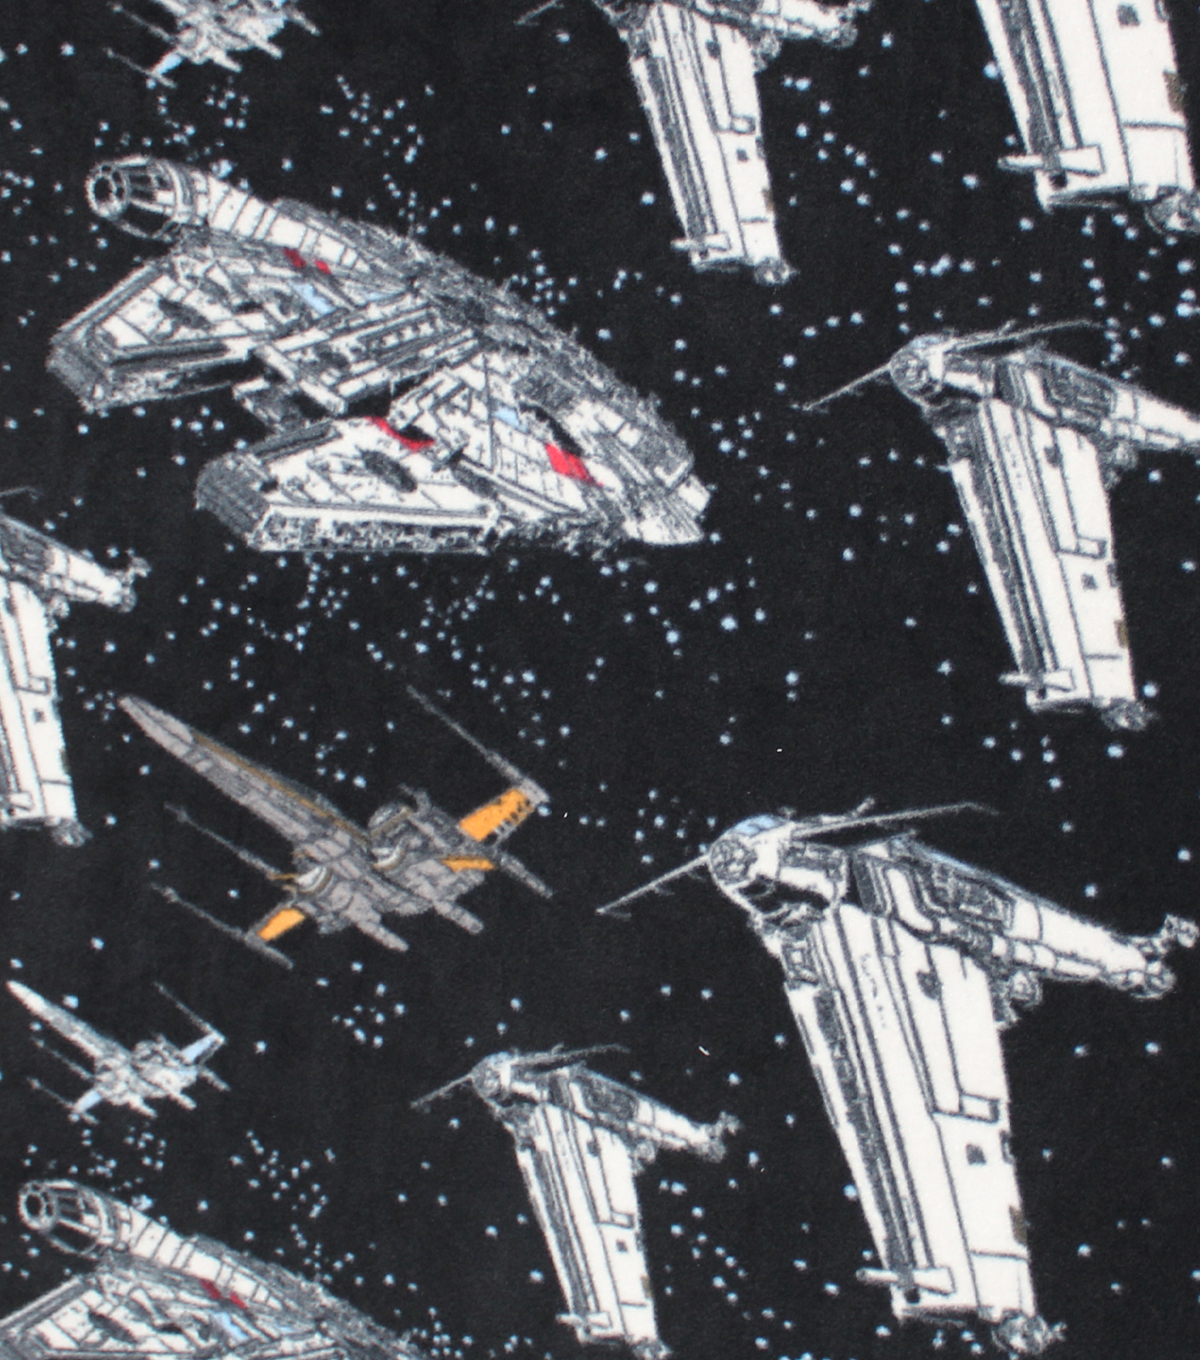 Star Wars: The Last Jedi Fleece Fabric -Ships